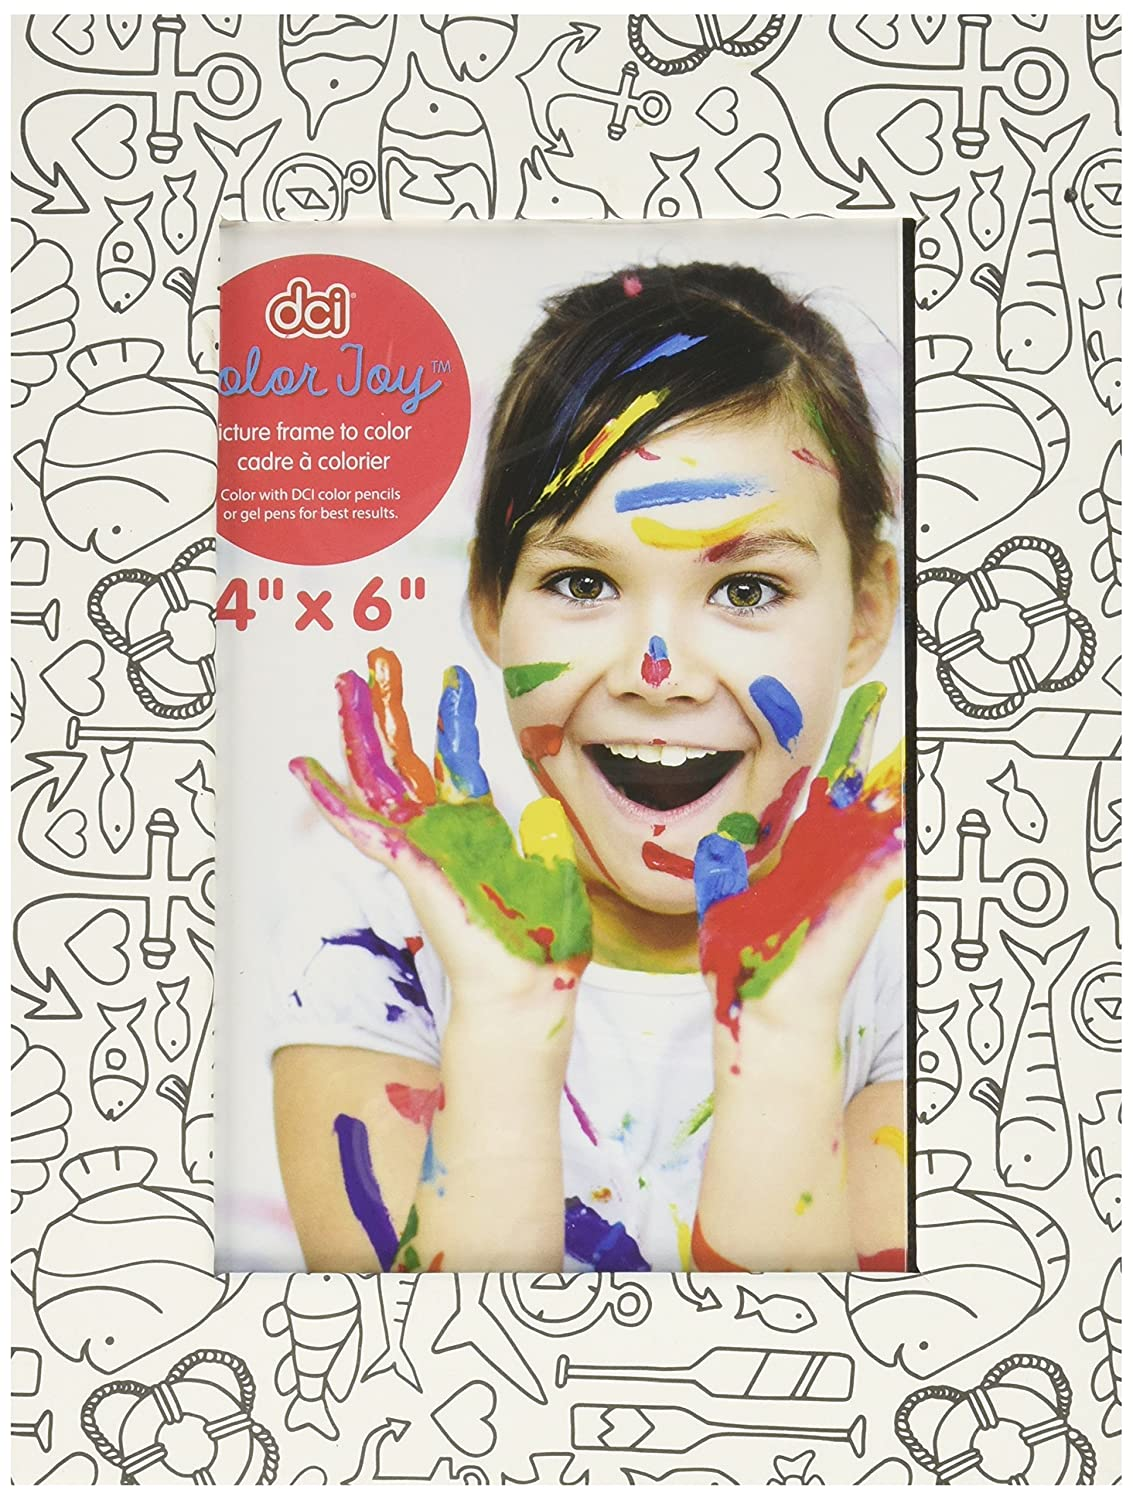 4 X 6 4x6 Assorted Designs ColorJoy Coloring Products Frame